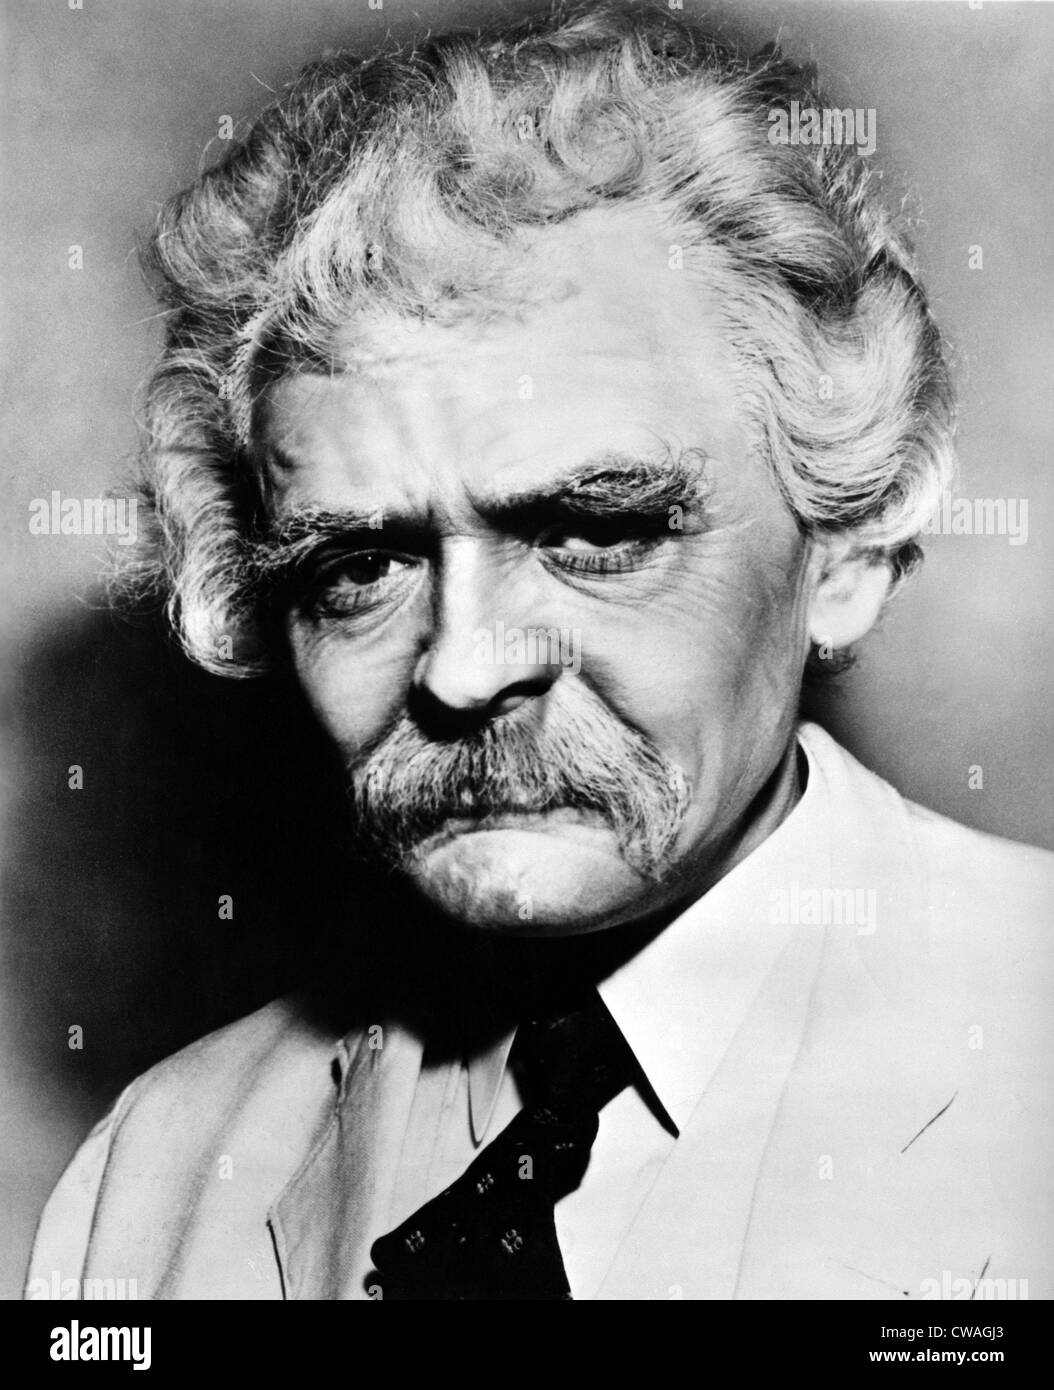 Hal Holbrook as Mark Twain in An Evening With Mark Twain, 1960. Courtesy: CSU Archives / Everett Collection - Stock Image